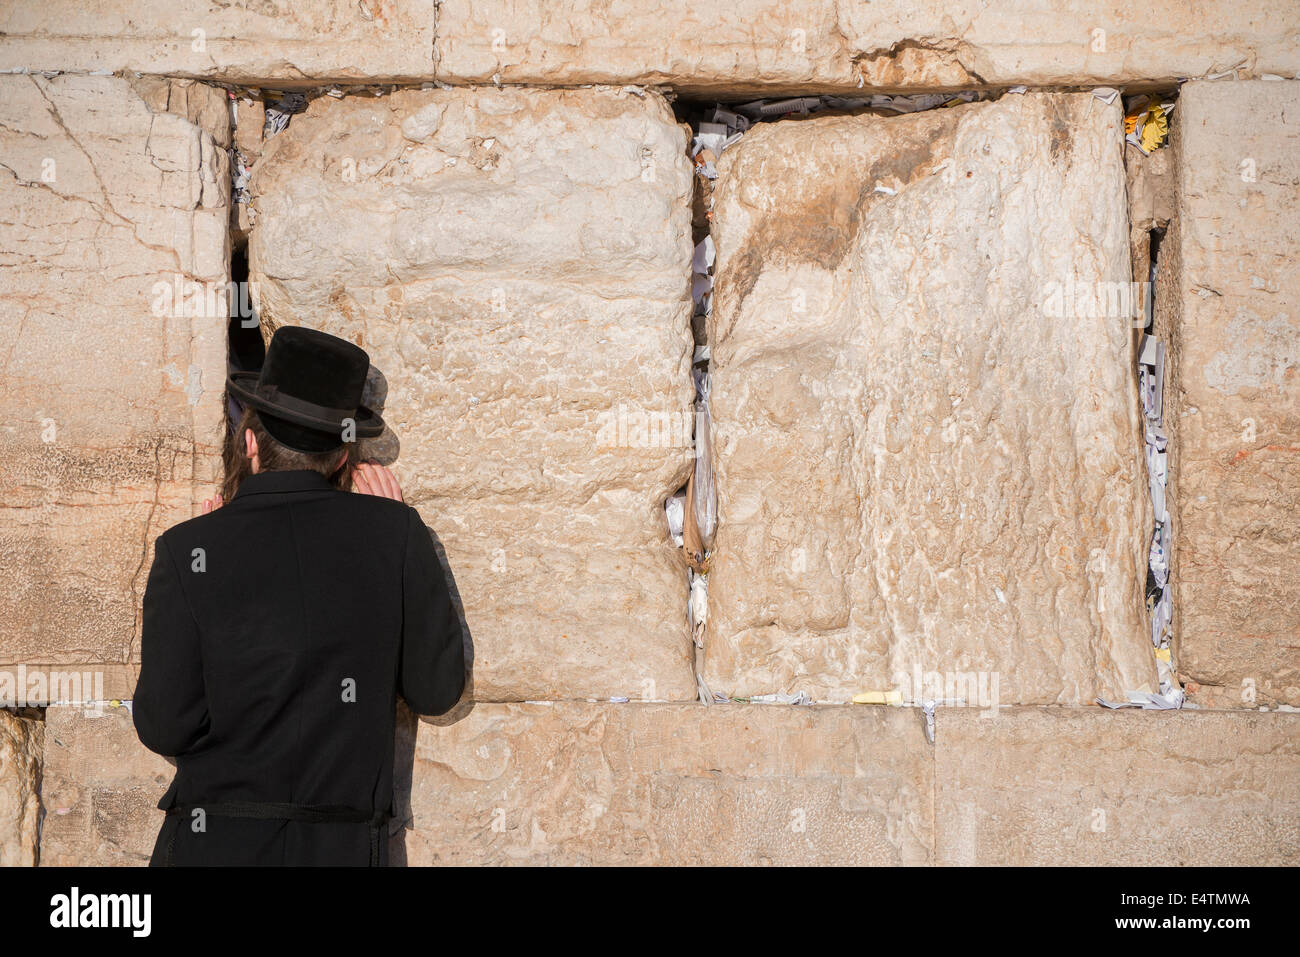 Jewish man prays next to a crack filled with letters containing written prayers at the Western Wall in Jerusalem. - Stock Image